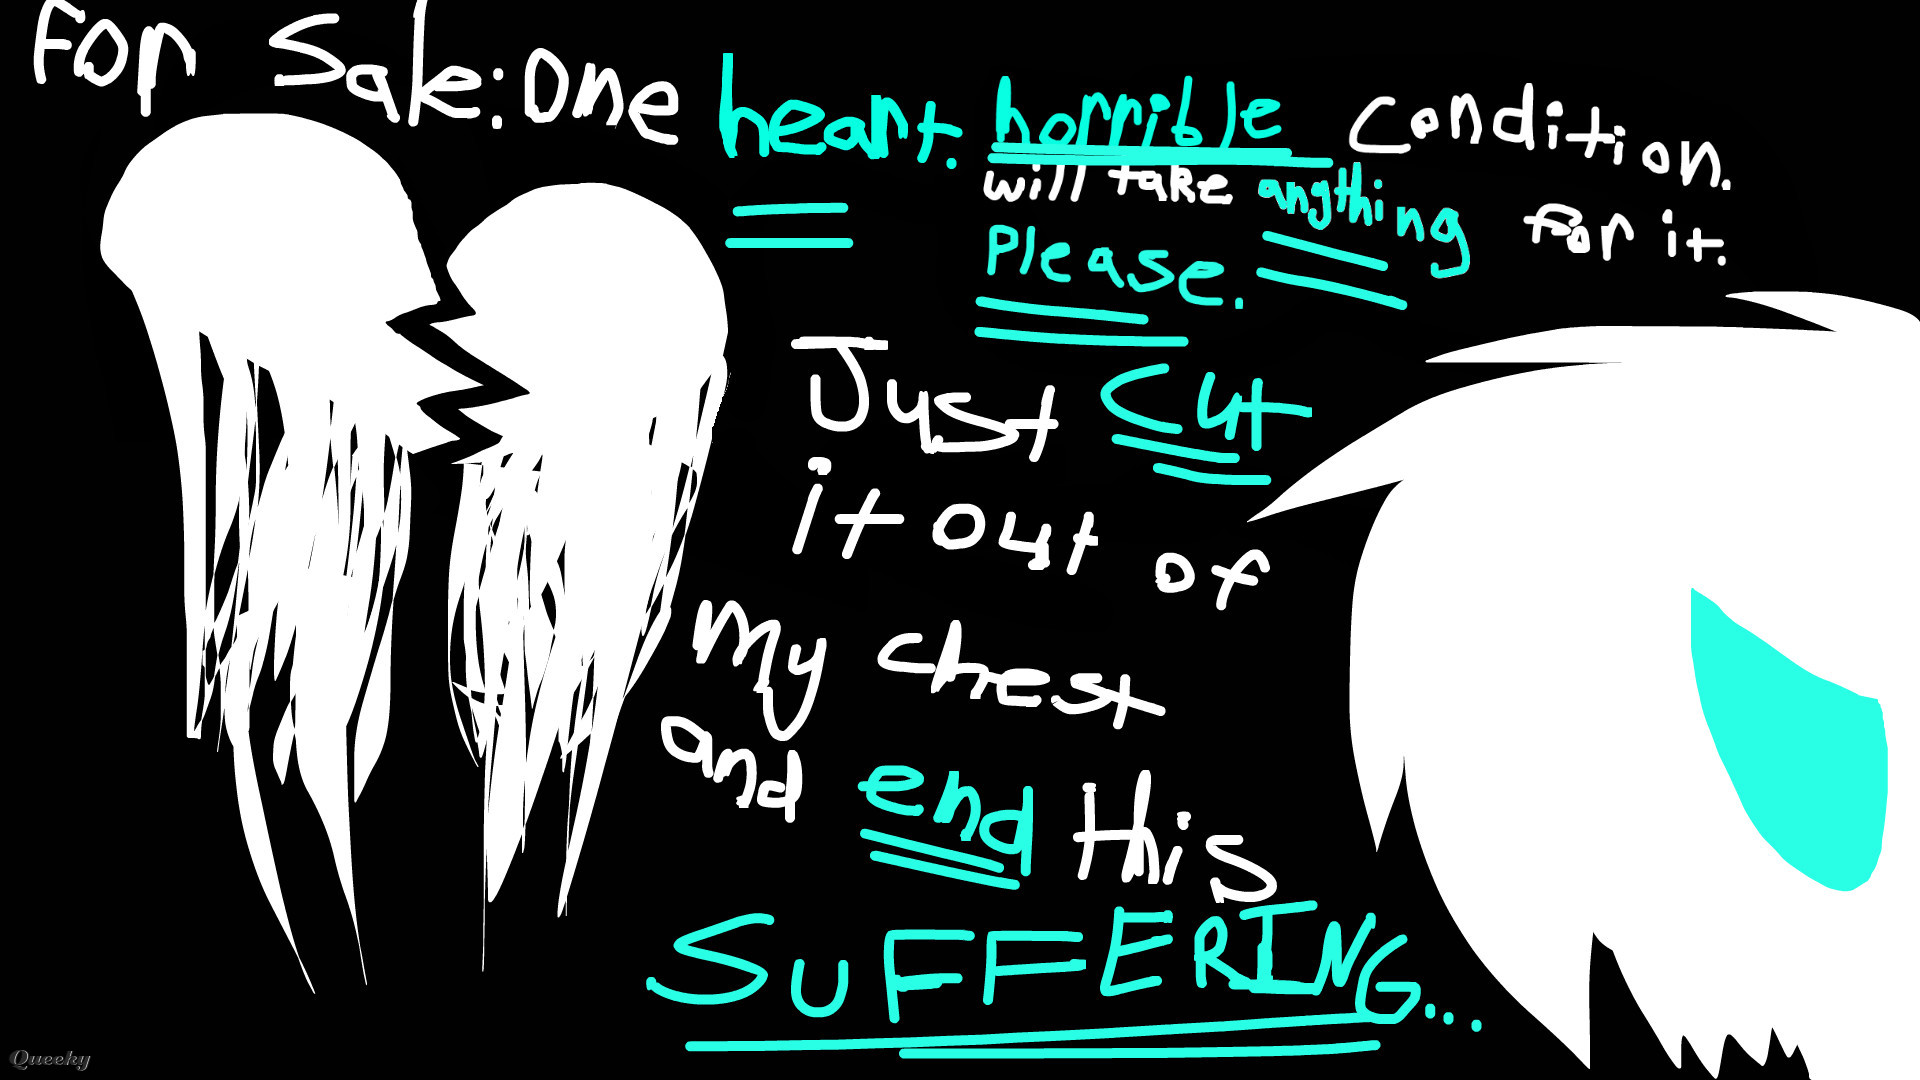 Emo quotes about cutting tumblr emo quote cutting sad arm - Impactful Emo Cuts Quotes 13 For Inspiration Article